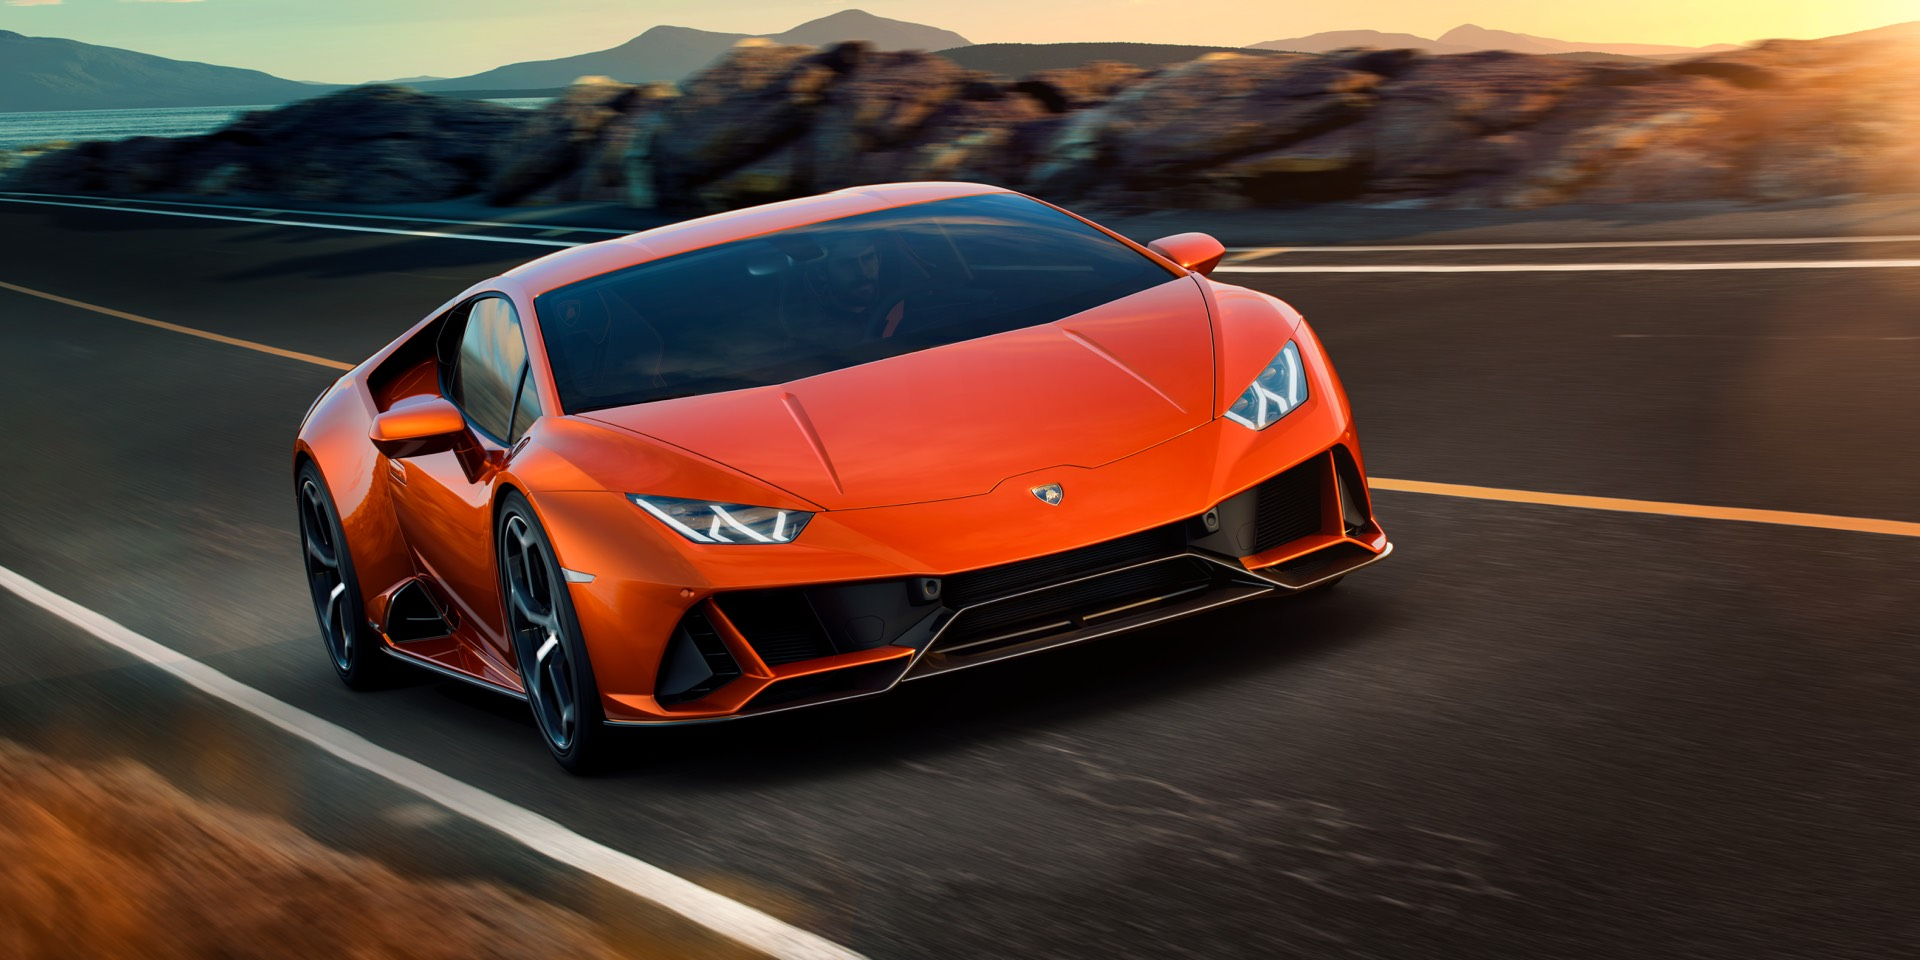 Lamborghini Huracan EVO on the Road